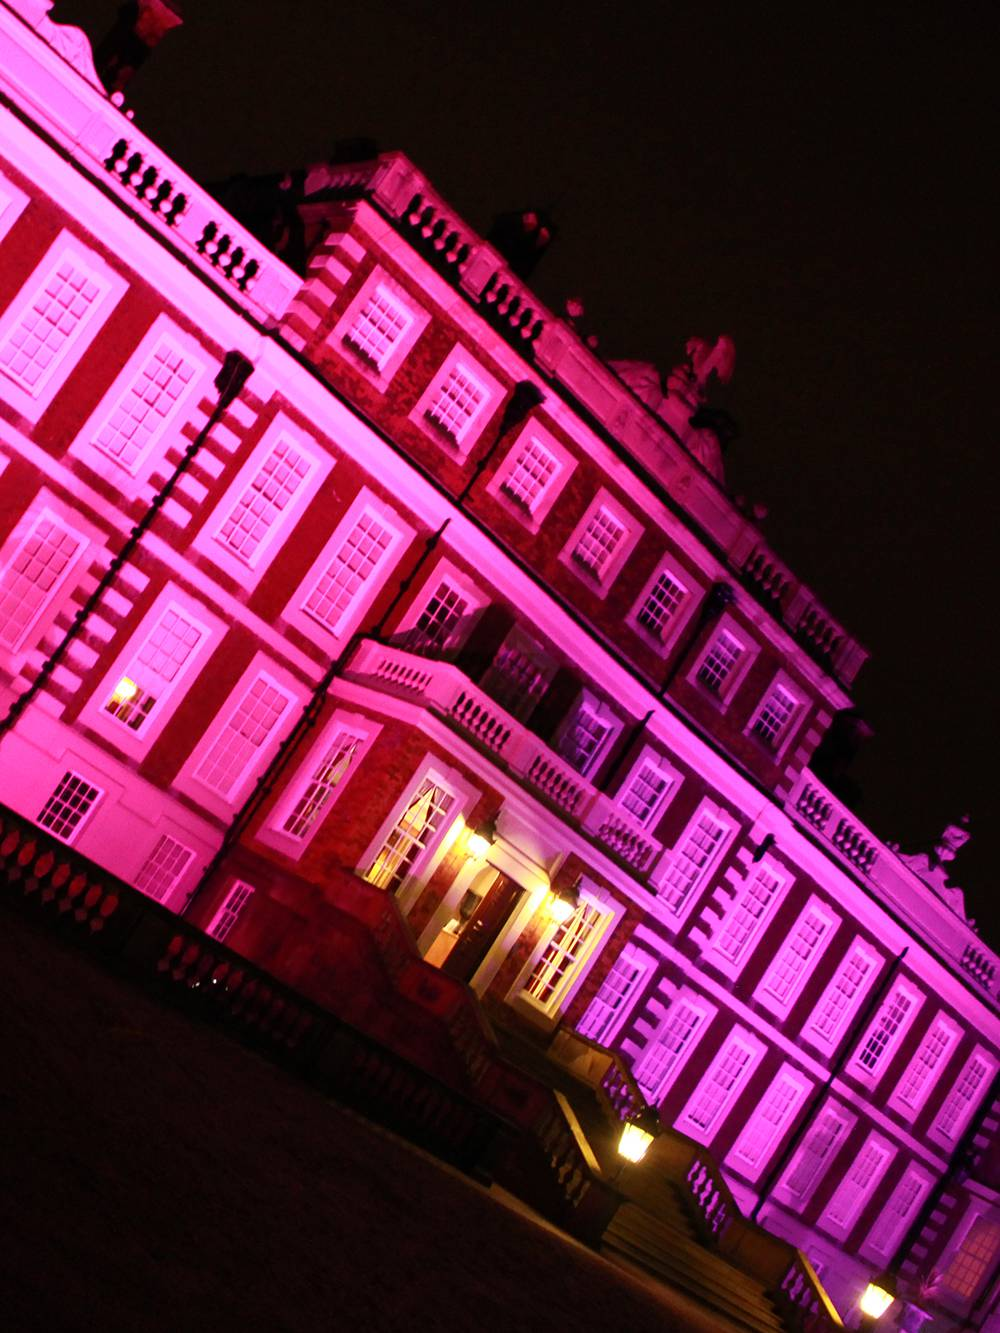 Lighting the outside of Knowsley Hall - the venue for a fashion show in Knowsley, Liverpool